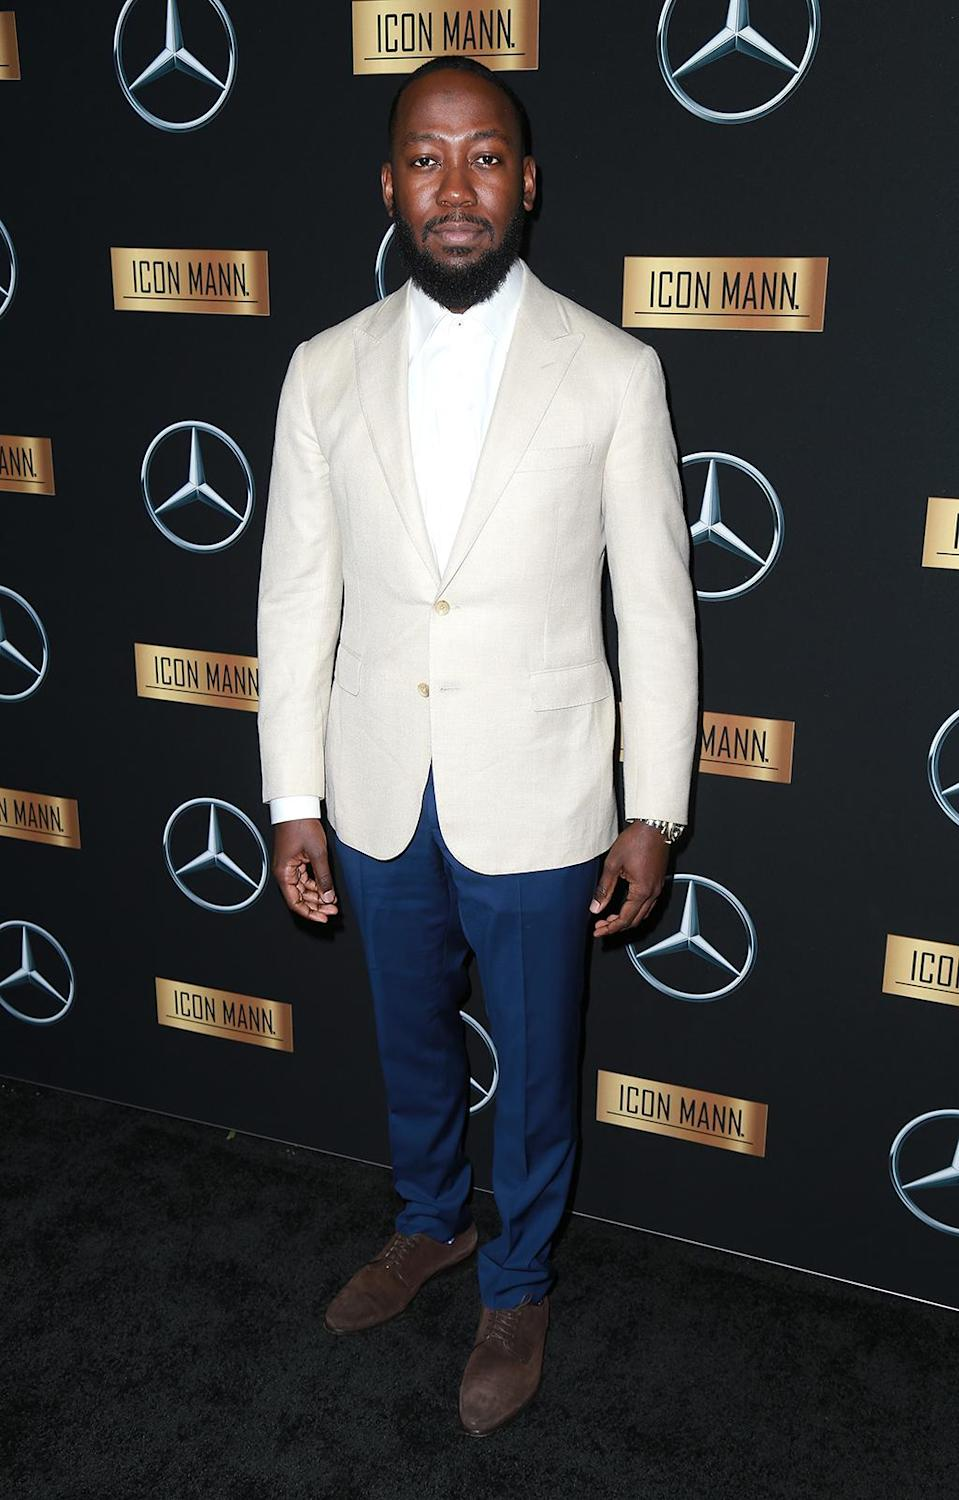 <p>Lamorne Morris arrives at the Mercedes-Benz x ICON MANN 2017 Academy Awards Viewing Party at Four Seasons Hotel Los Angeles at Beverly Hills on February 26, 2017 in Los Angeles, California. (Photo by Leon Bennett/Getty Images) </p>